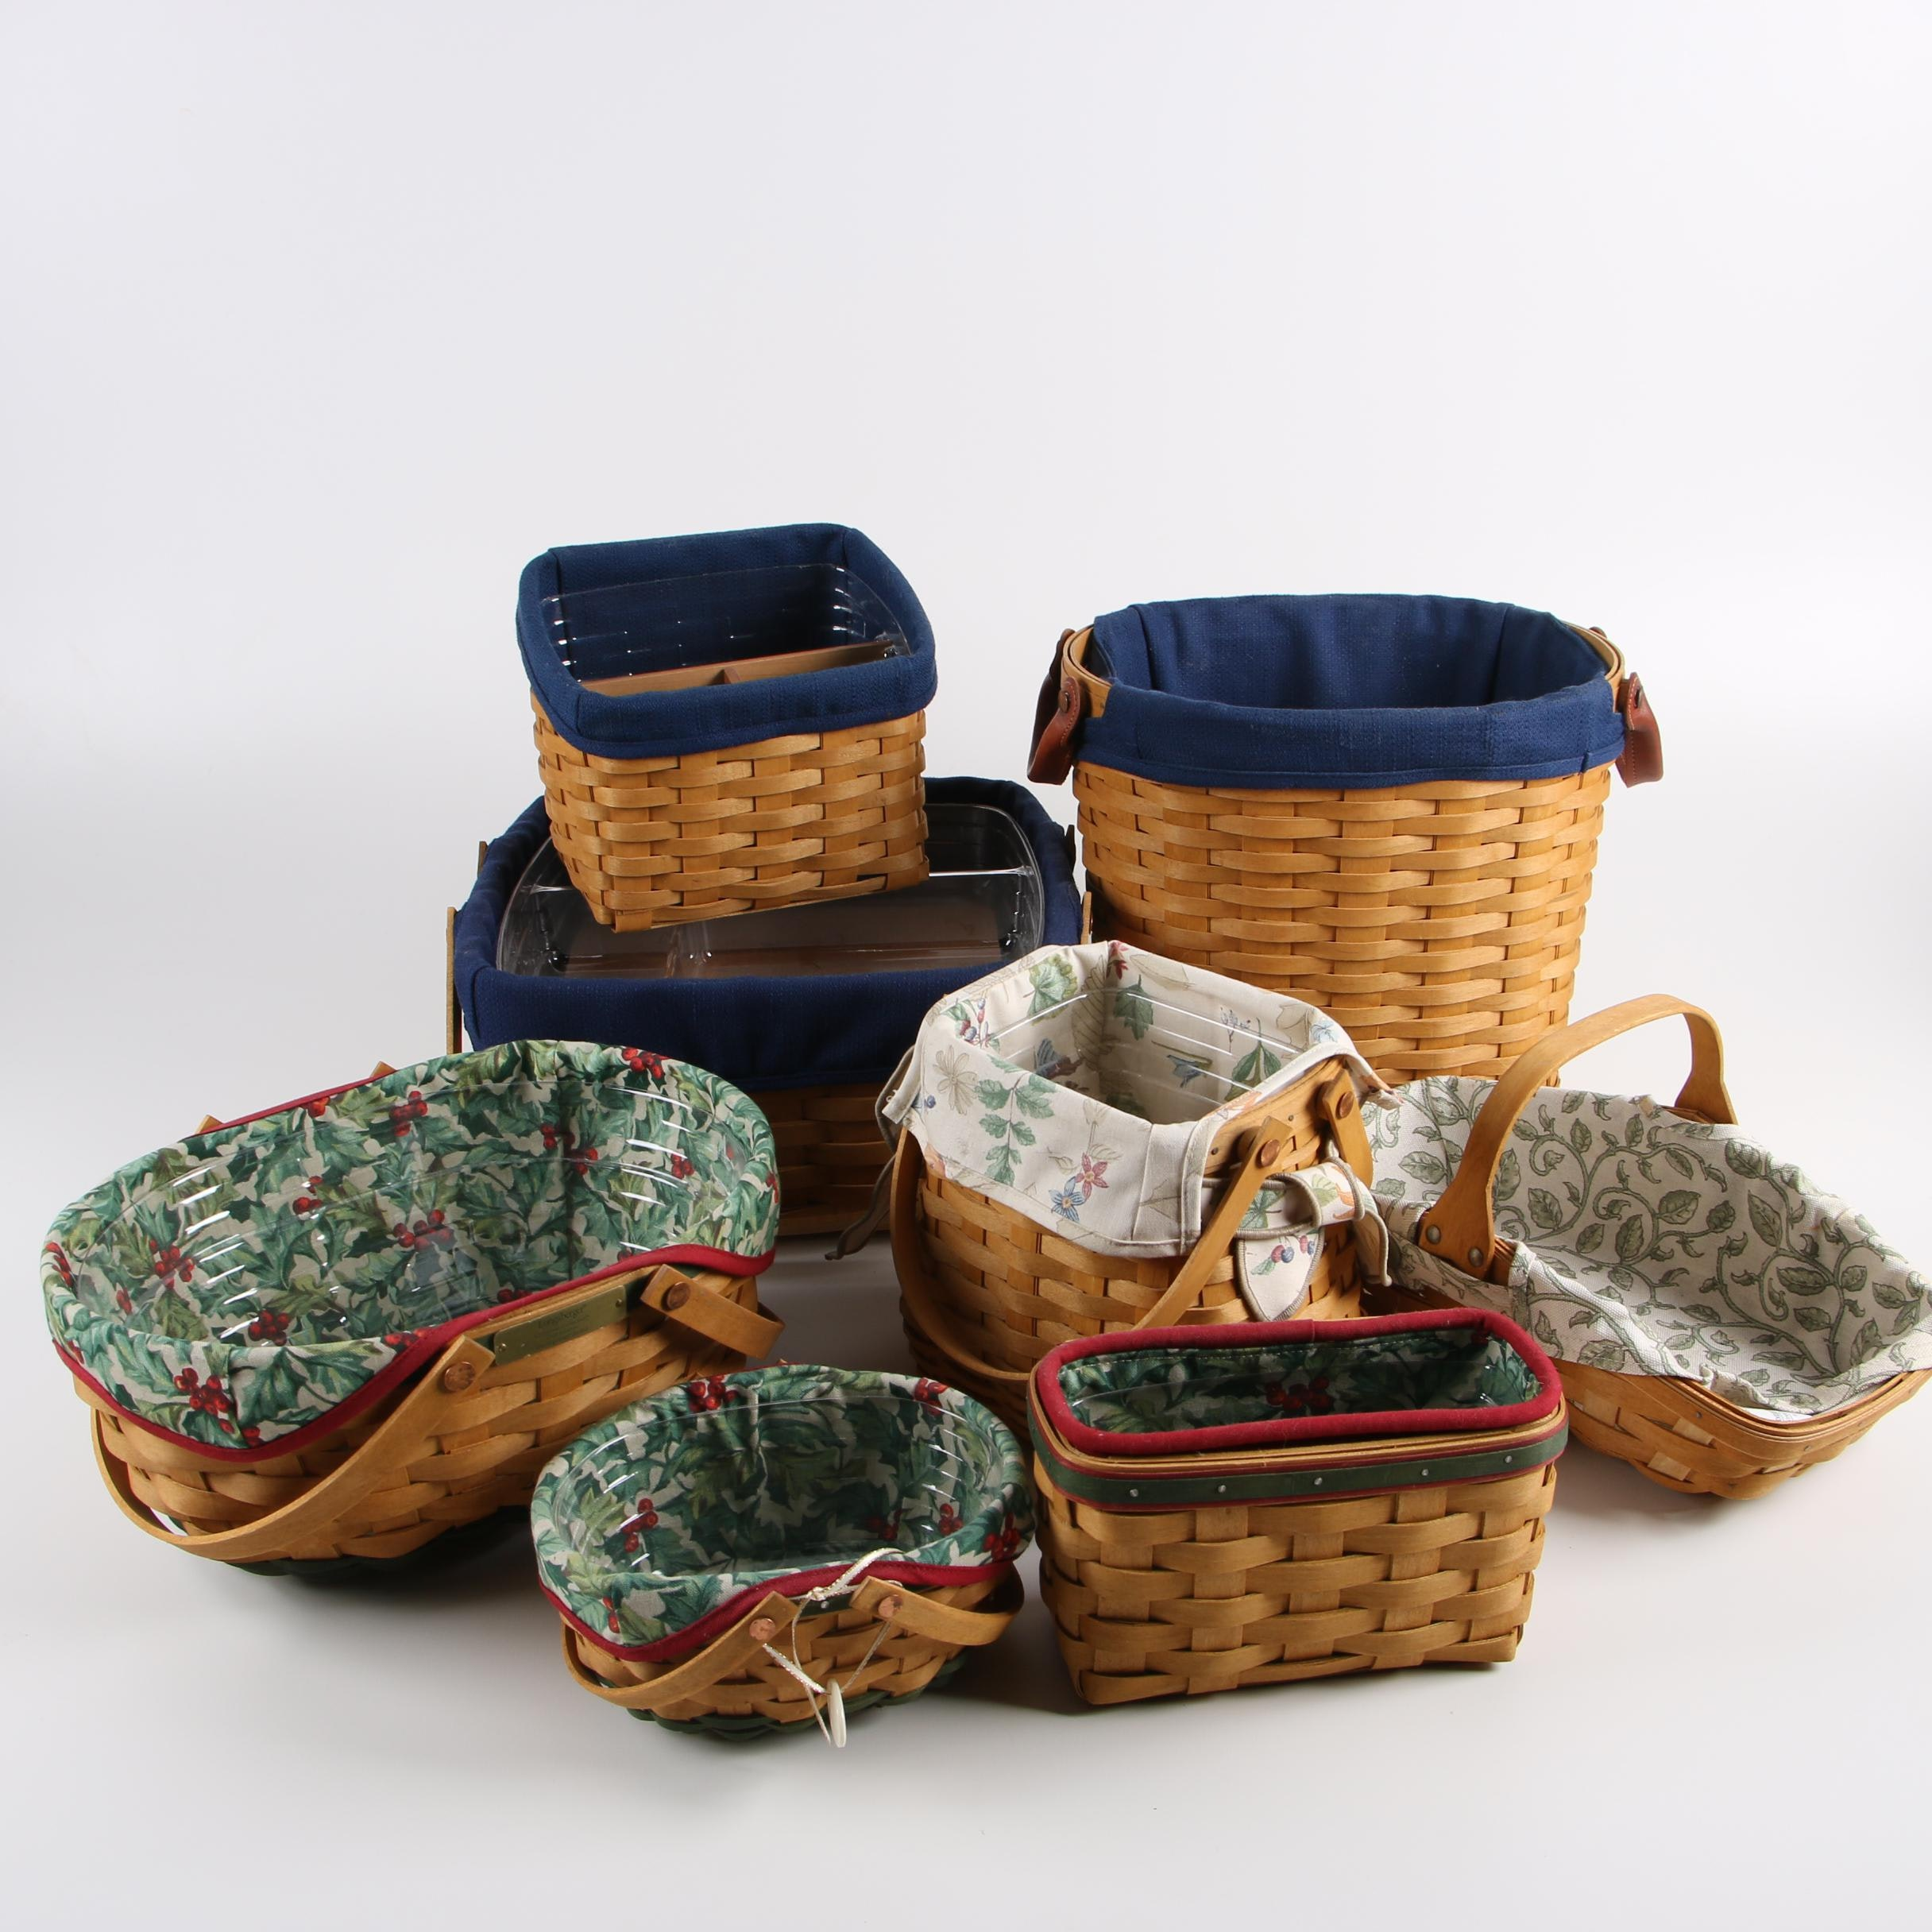 2004-2005 Longaberger Christmas Baskets with Fabric Liners